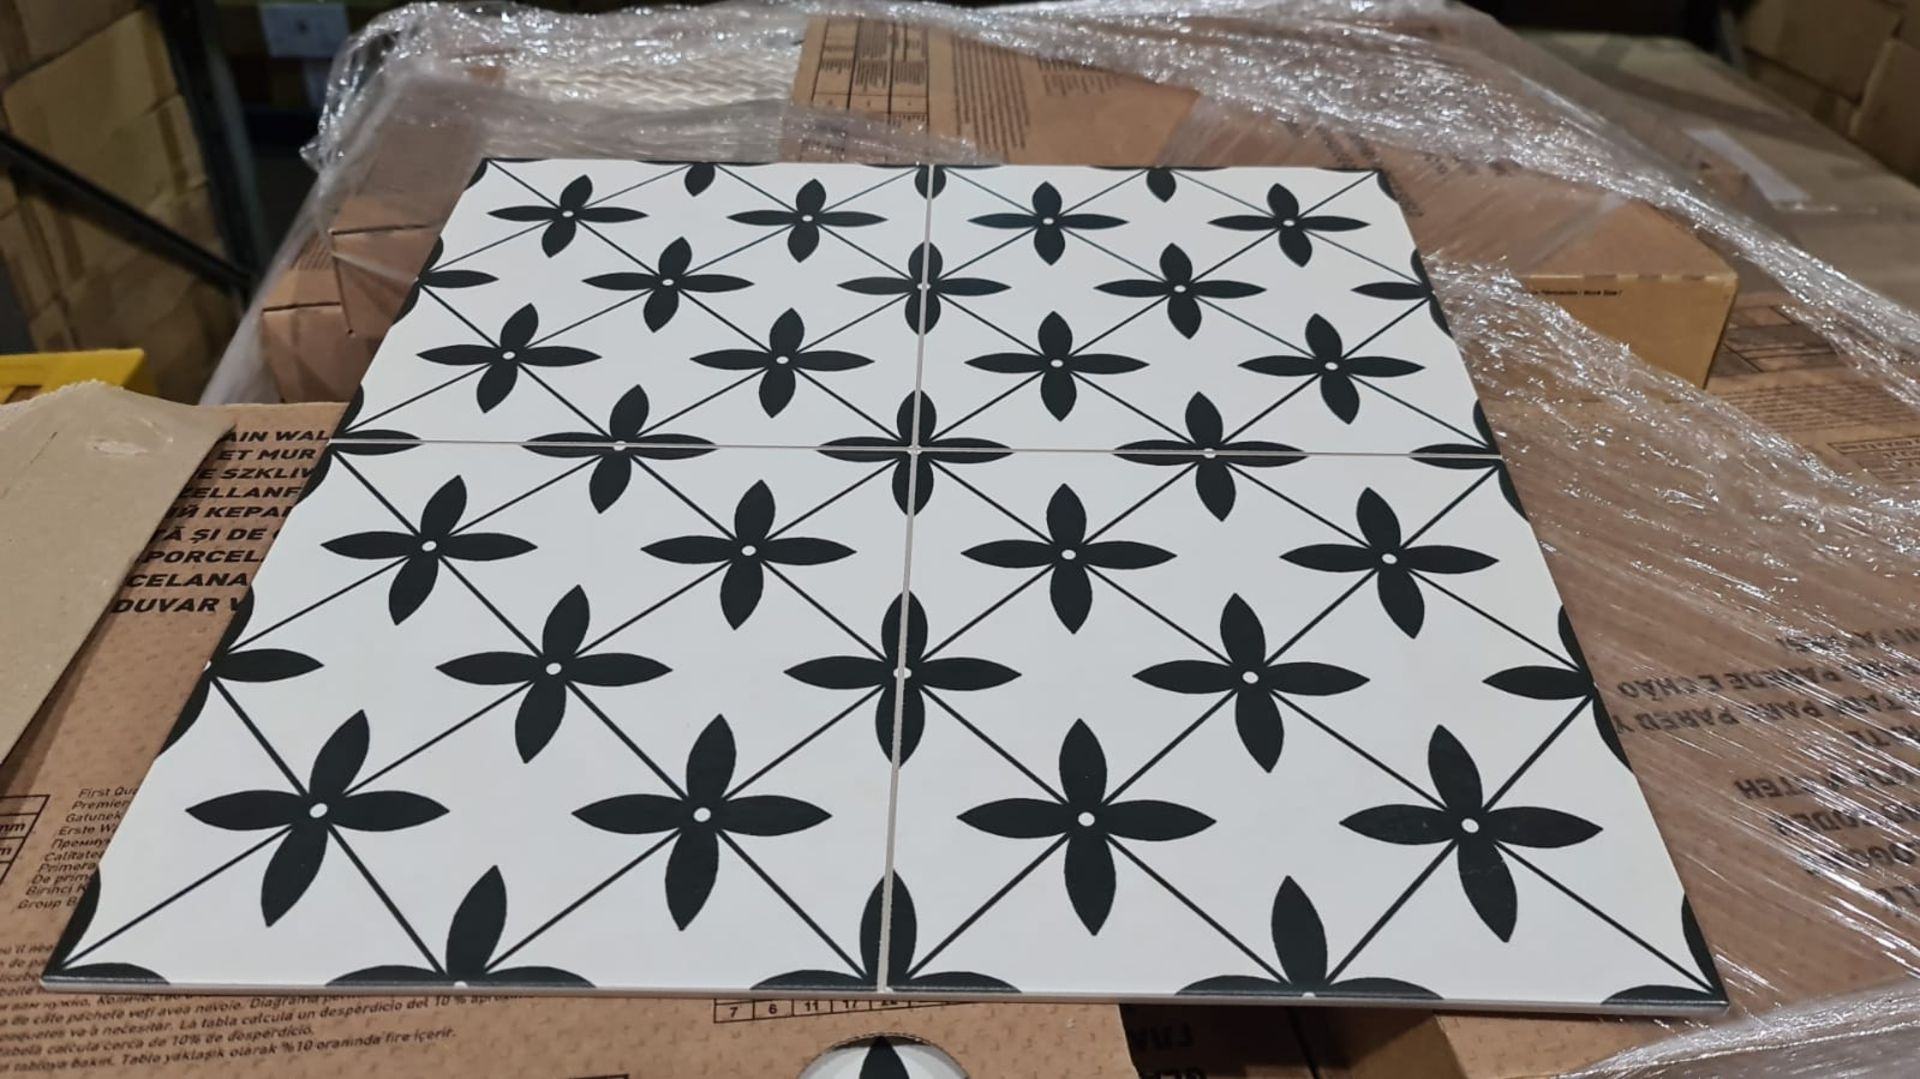 NEW 5.68M2 Black and White Caliber Glazed Porcelain Wall and Floor Tiles. Create a seamless,